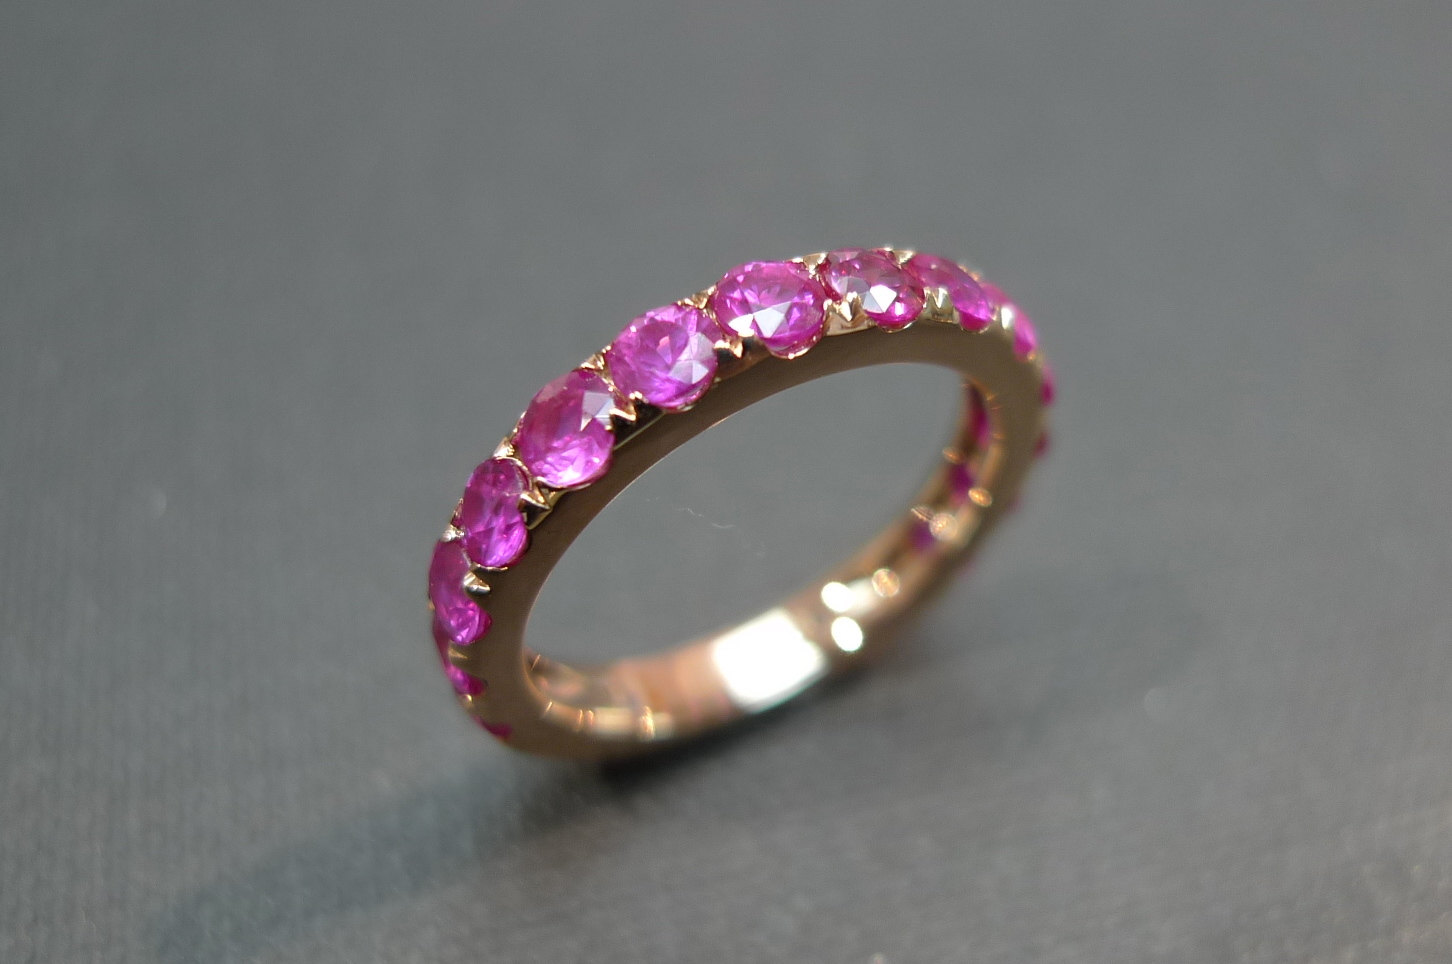 pink sapphire wedding band ring in 18k rose gold sapphire wedding bands Pink Sapphire Wedding Band Ring in 18K Rose Gold